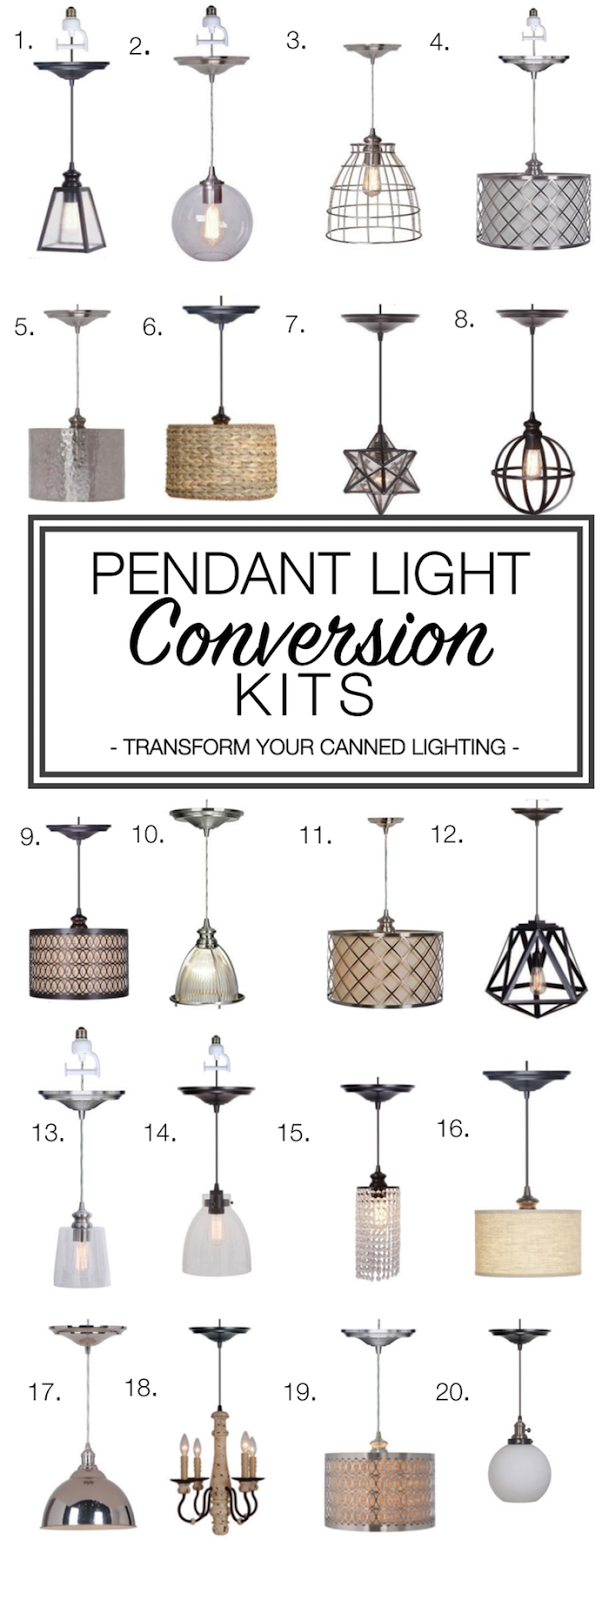 Here Are Some Of My Other Favorite Pendant Light Conversion Kits That Can  Be Used On Canned Lighting!